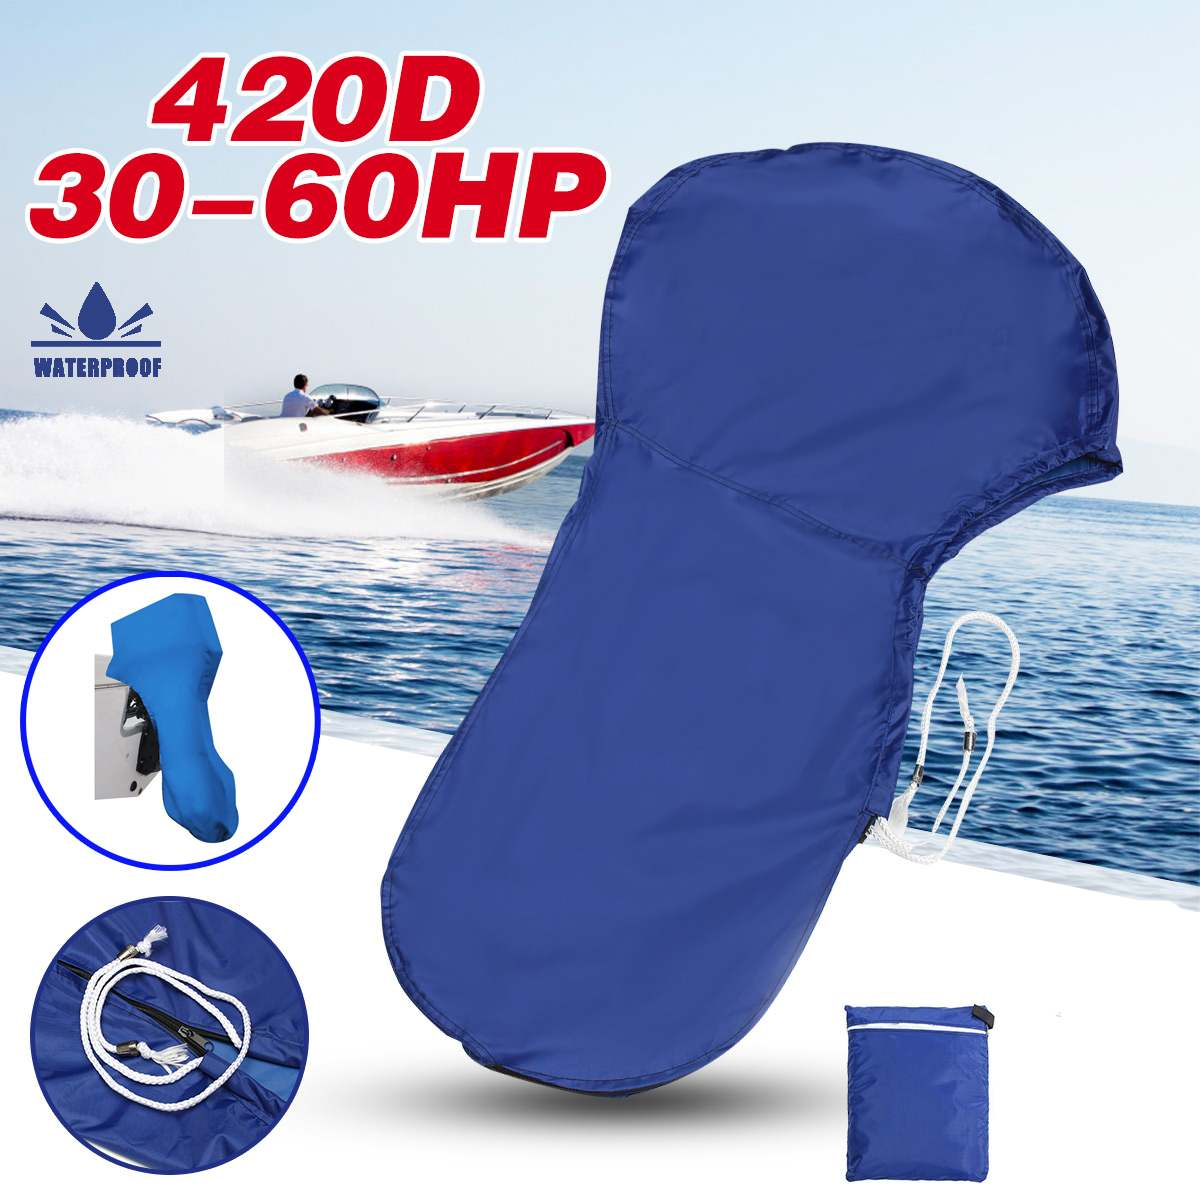 420D 30-60HP Boat Full Outboard Motor Engine Cover For 30-60HP Motor Waterproof